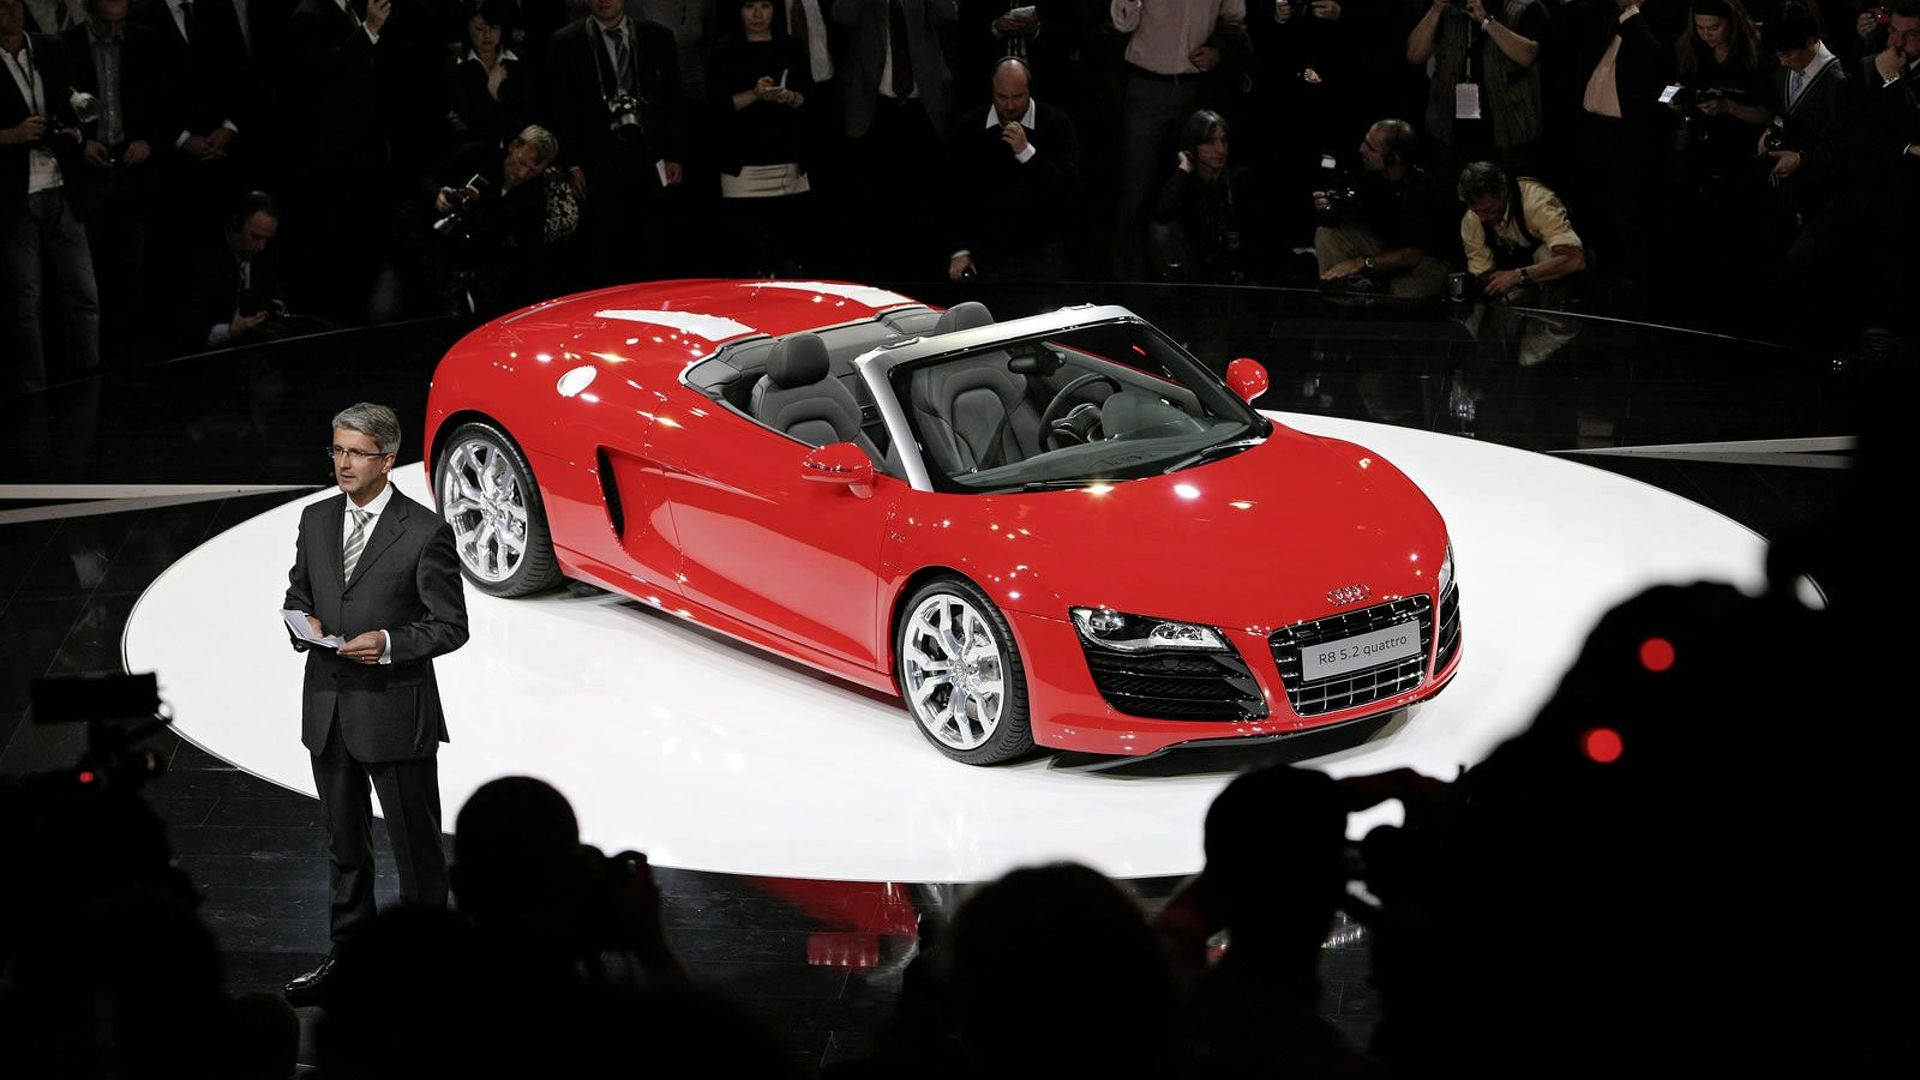 New Iron Man 2 Audi R8 Spyder Commercial Video Interactive Trailer